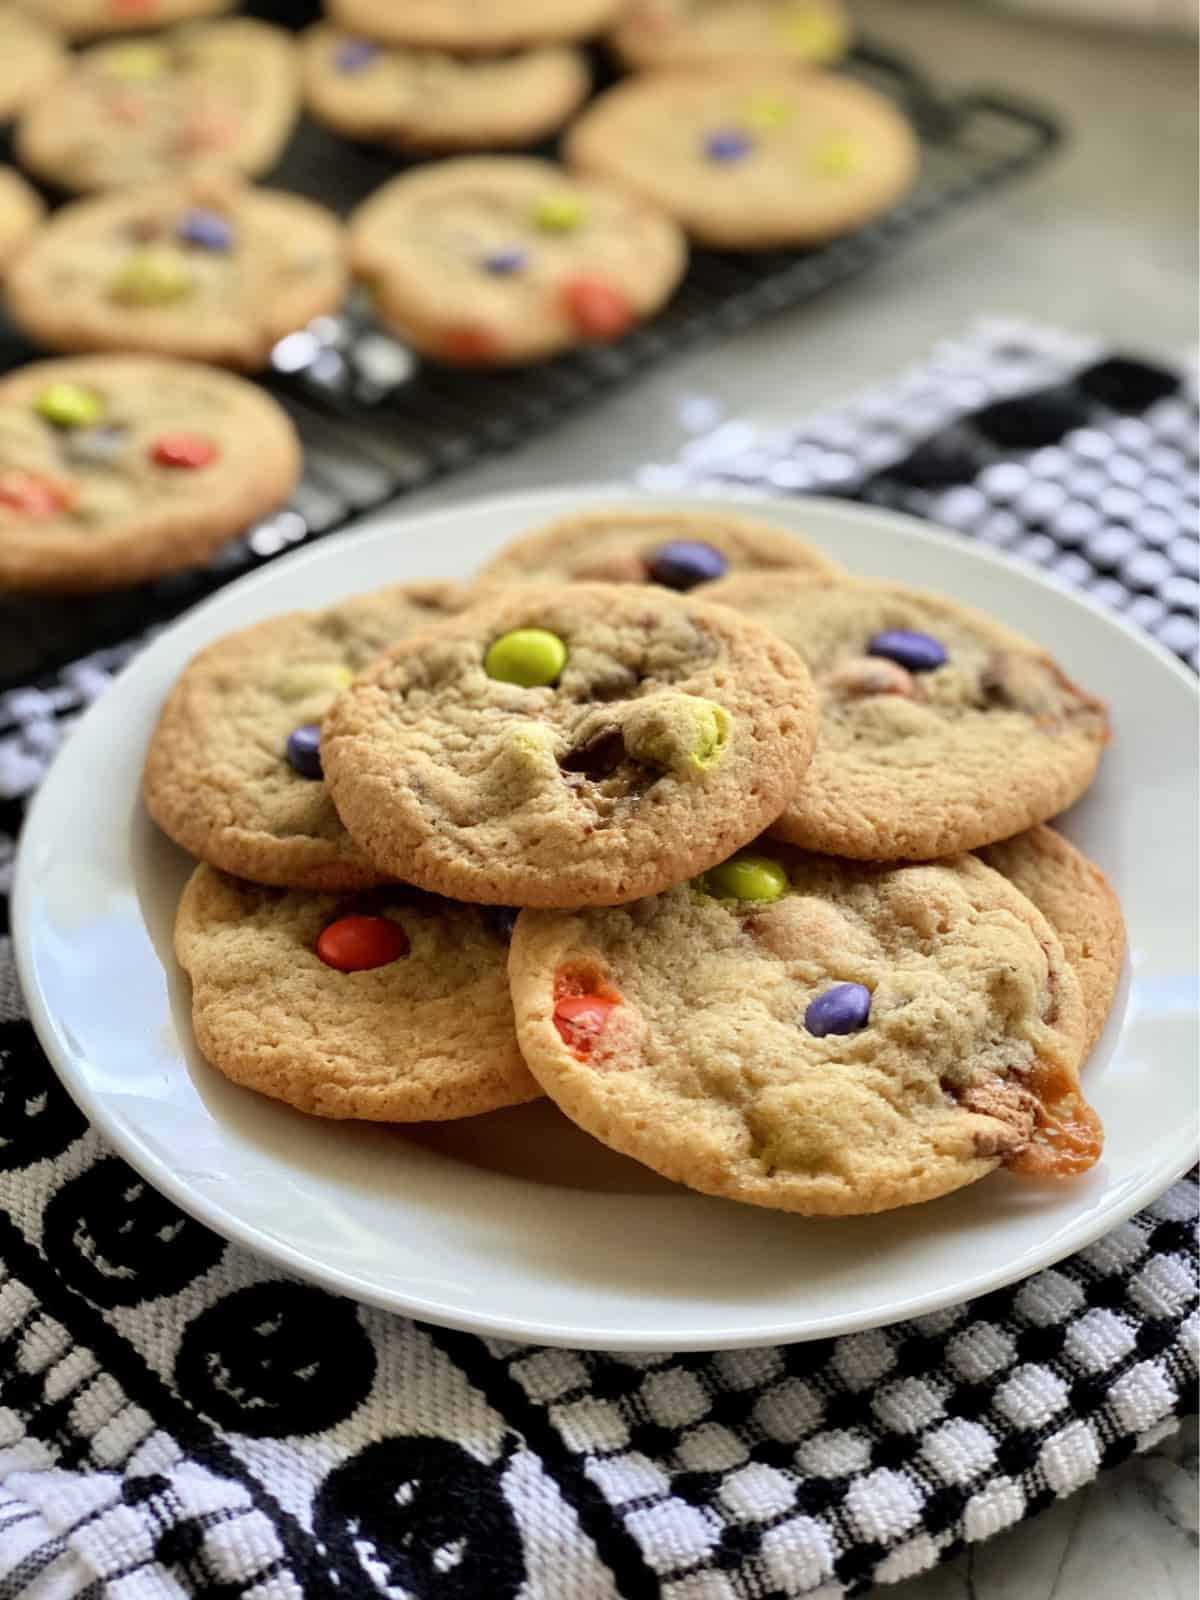 Close up of a plate of cookies with candies in them and more cookies in the background.